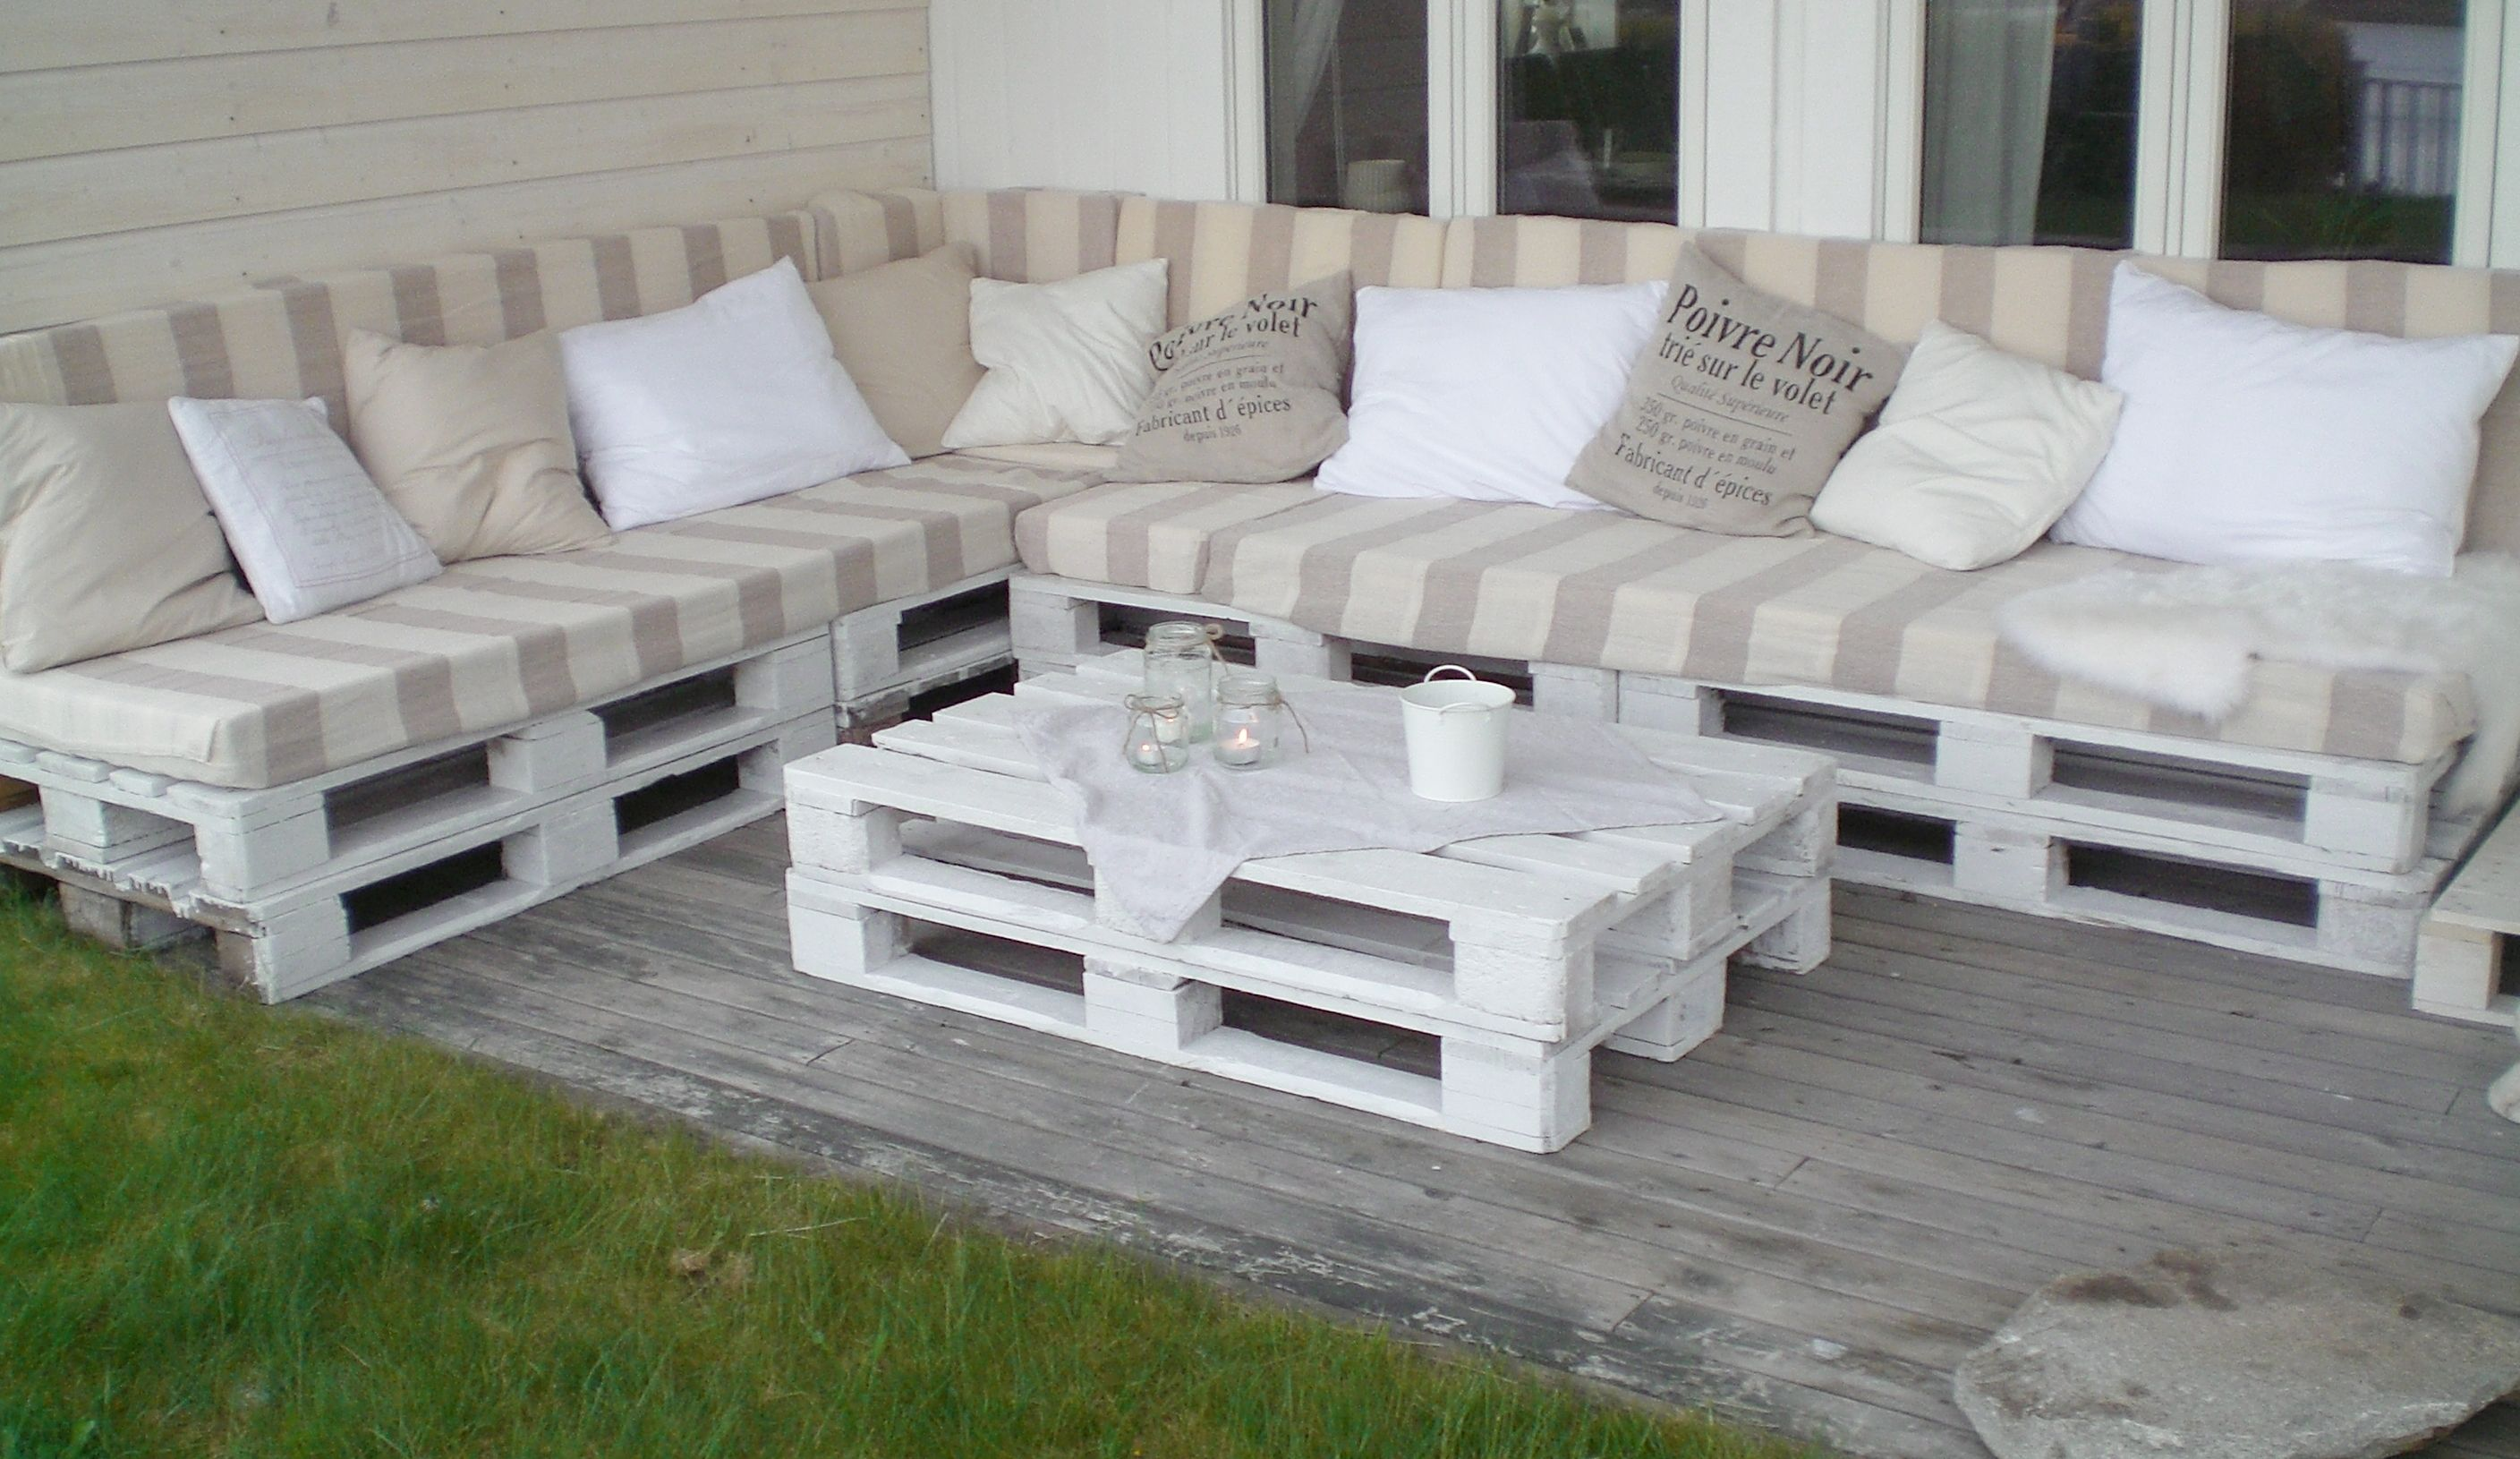 Pallets Sofa and Table for Patio | Balkon, Palletten und Terrasse